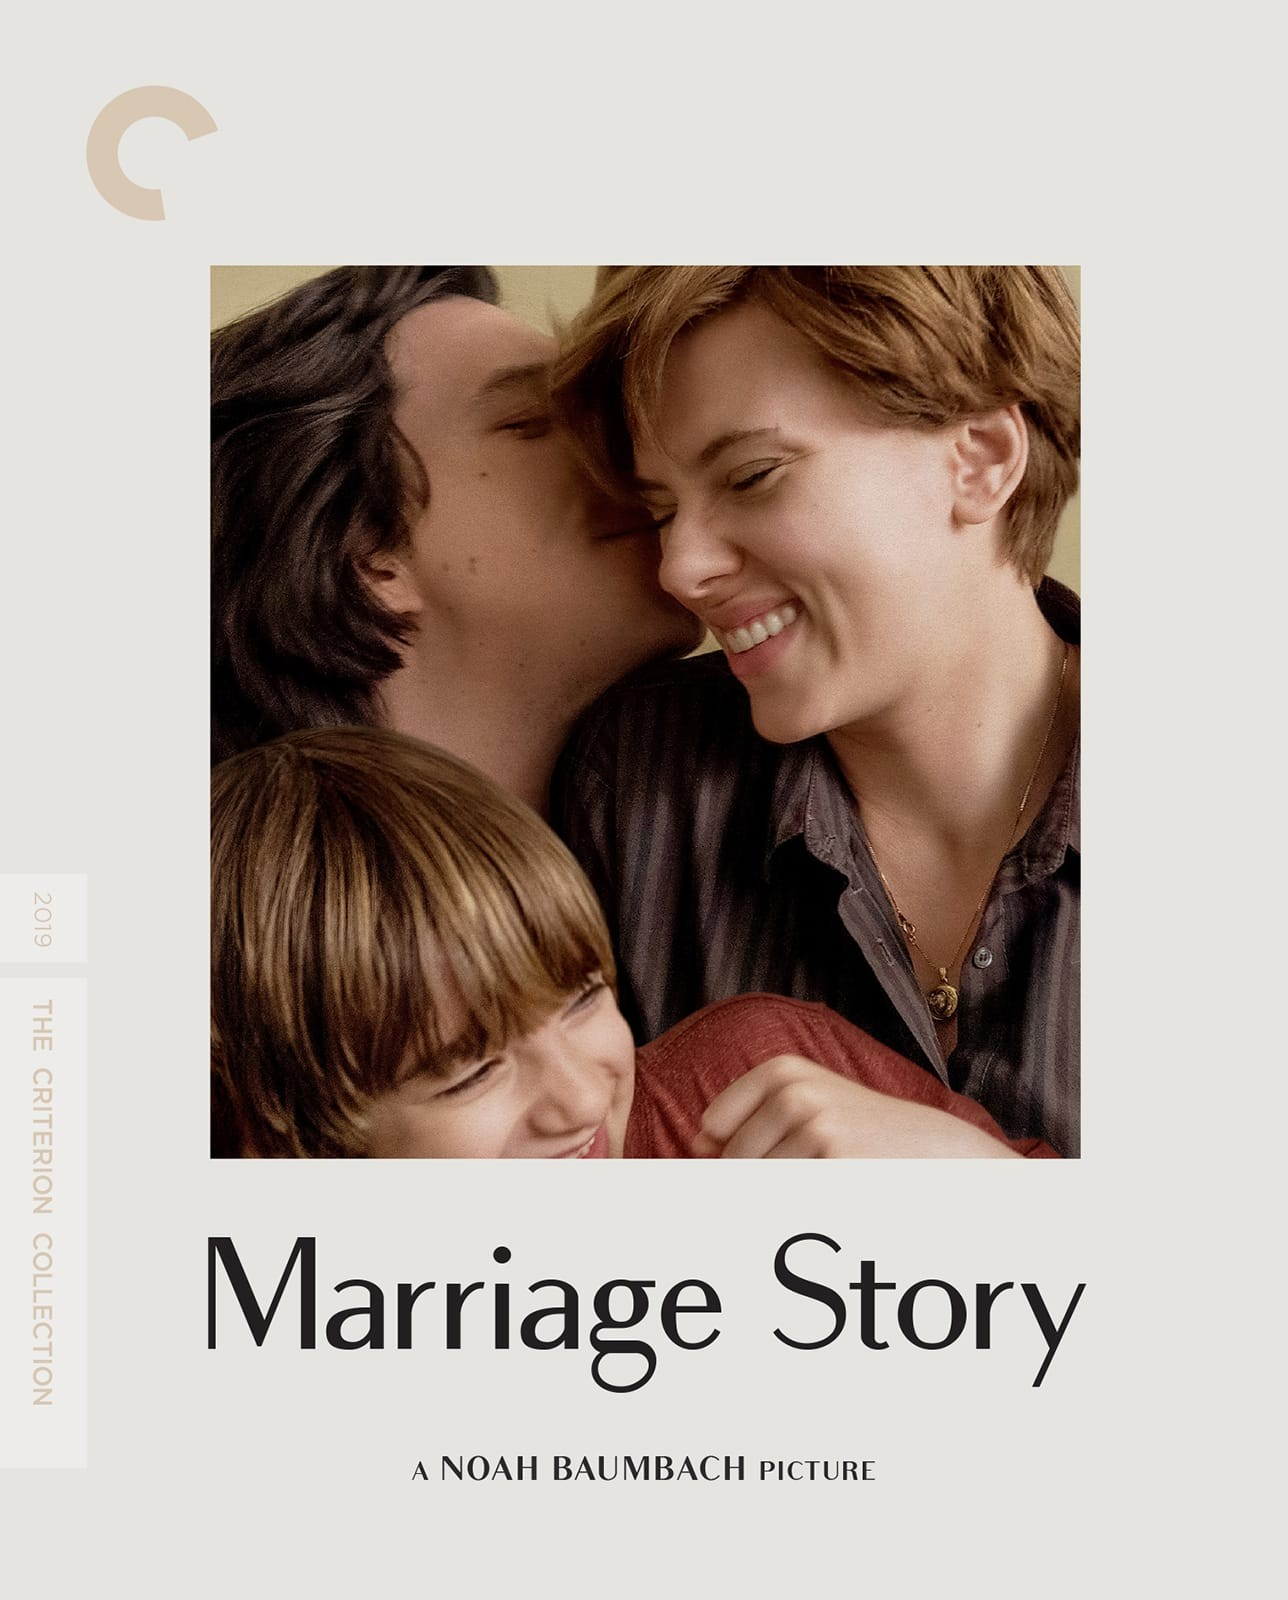 Marriage Story (2019) | The Criterion Collection